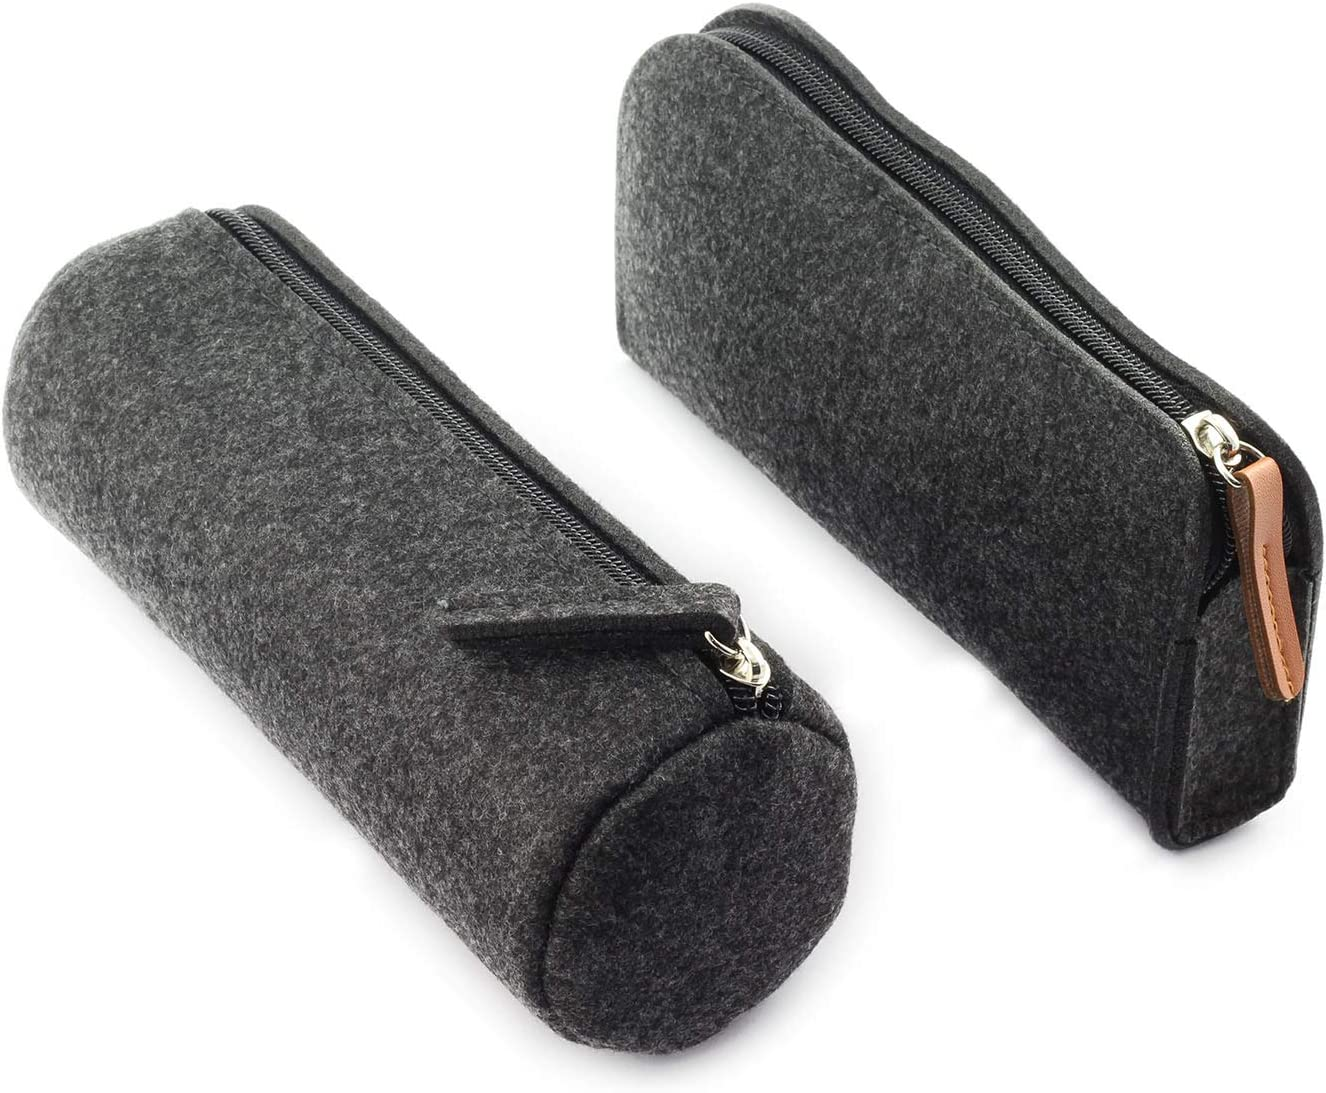 partstock 2pcs Felt Pen Bag Minimalist Office School Stationery Supplies Multi-Function Large Capacity Storage Bag Dark Gray (1x Flat, 1x Round)